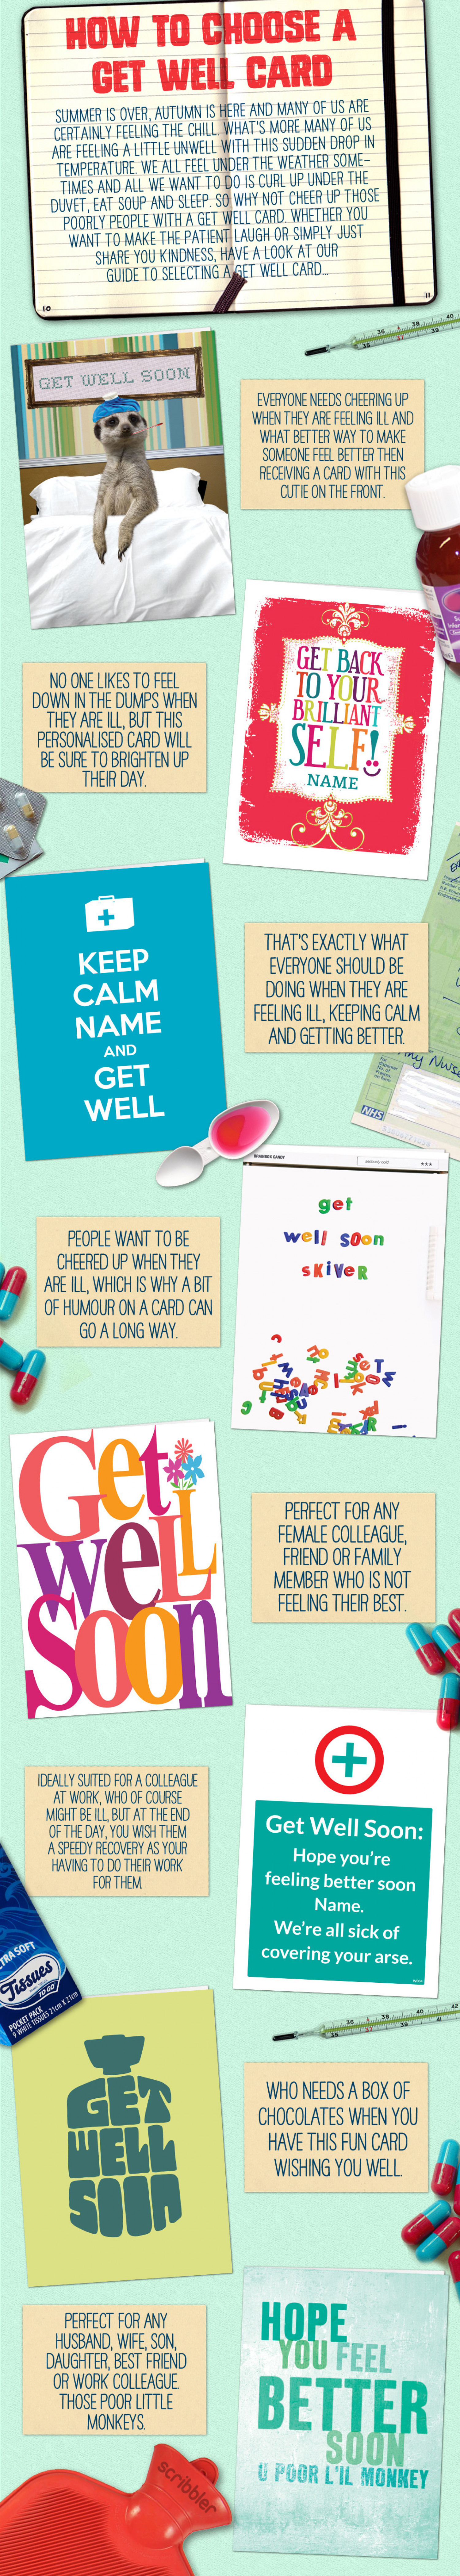 How to Choose a Get Well Soon Card Infographic